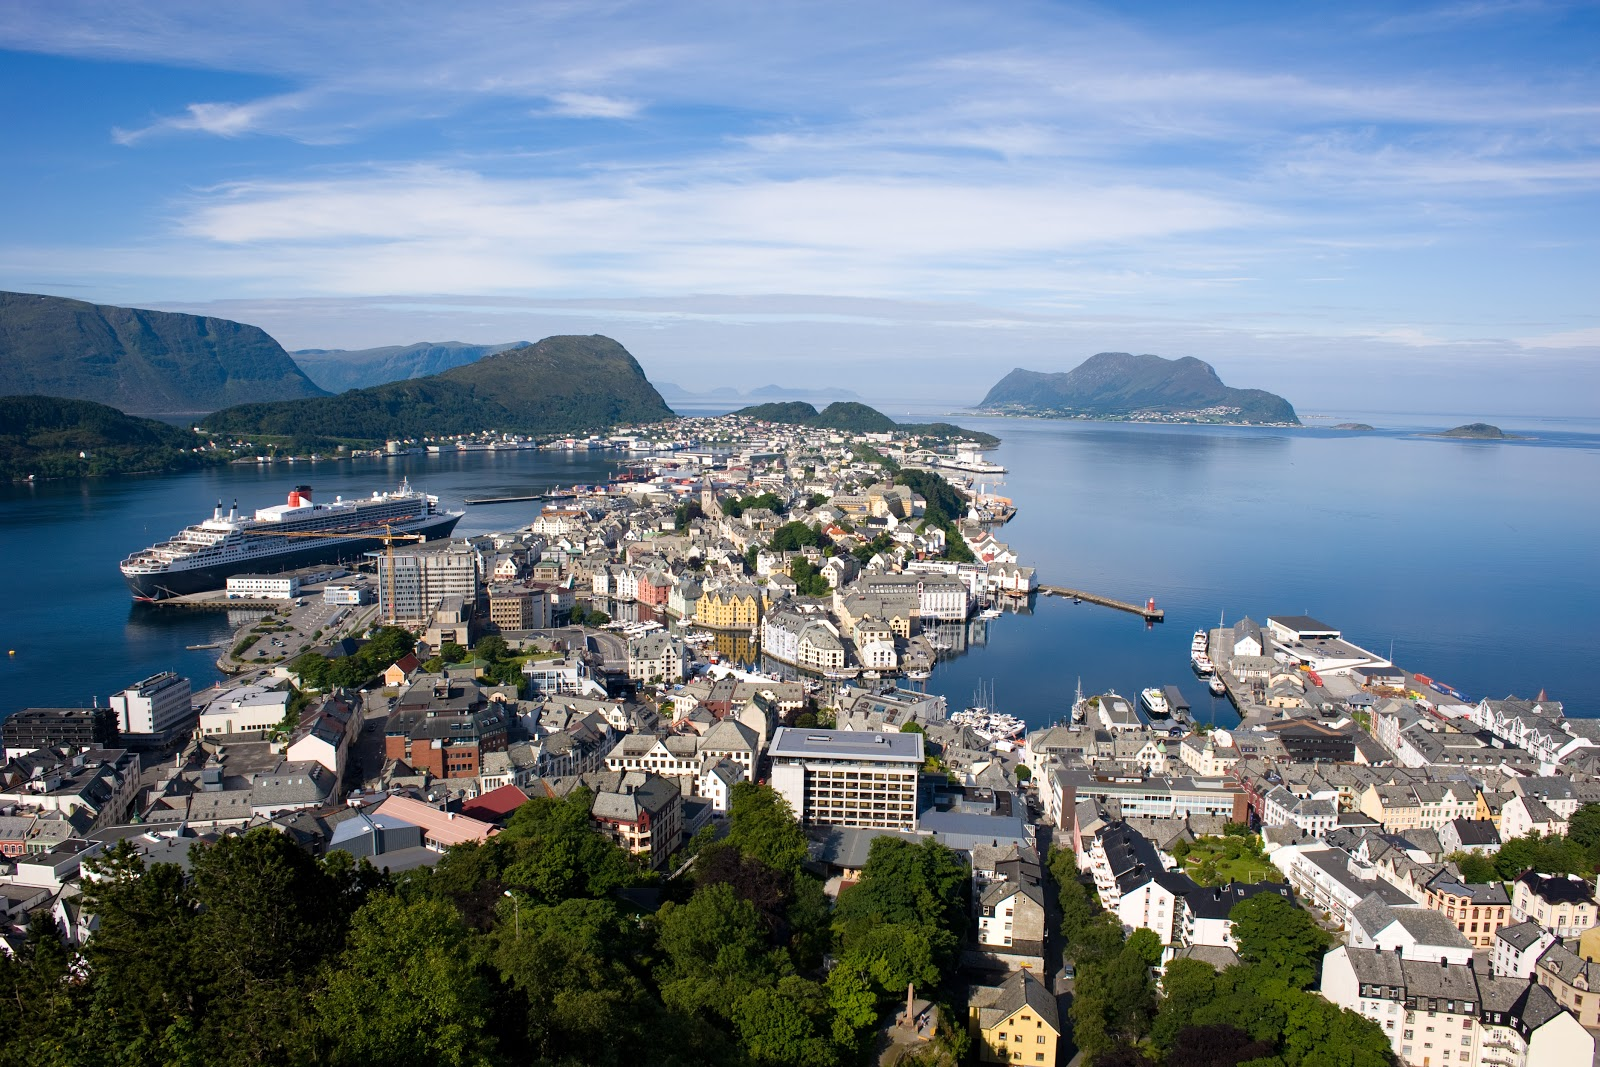 Spectacular views await at the top of Aksla hill in Ålesund, Norway. Photo: Wikimedia.org.